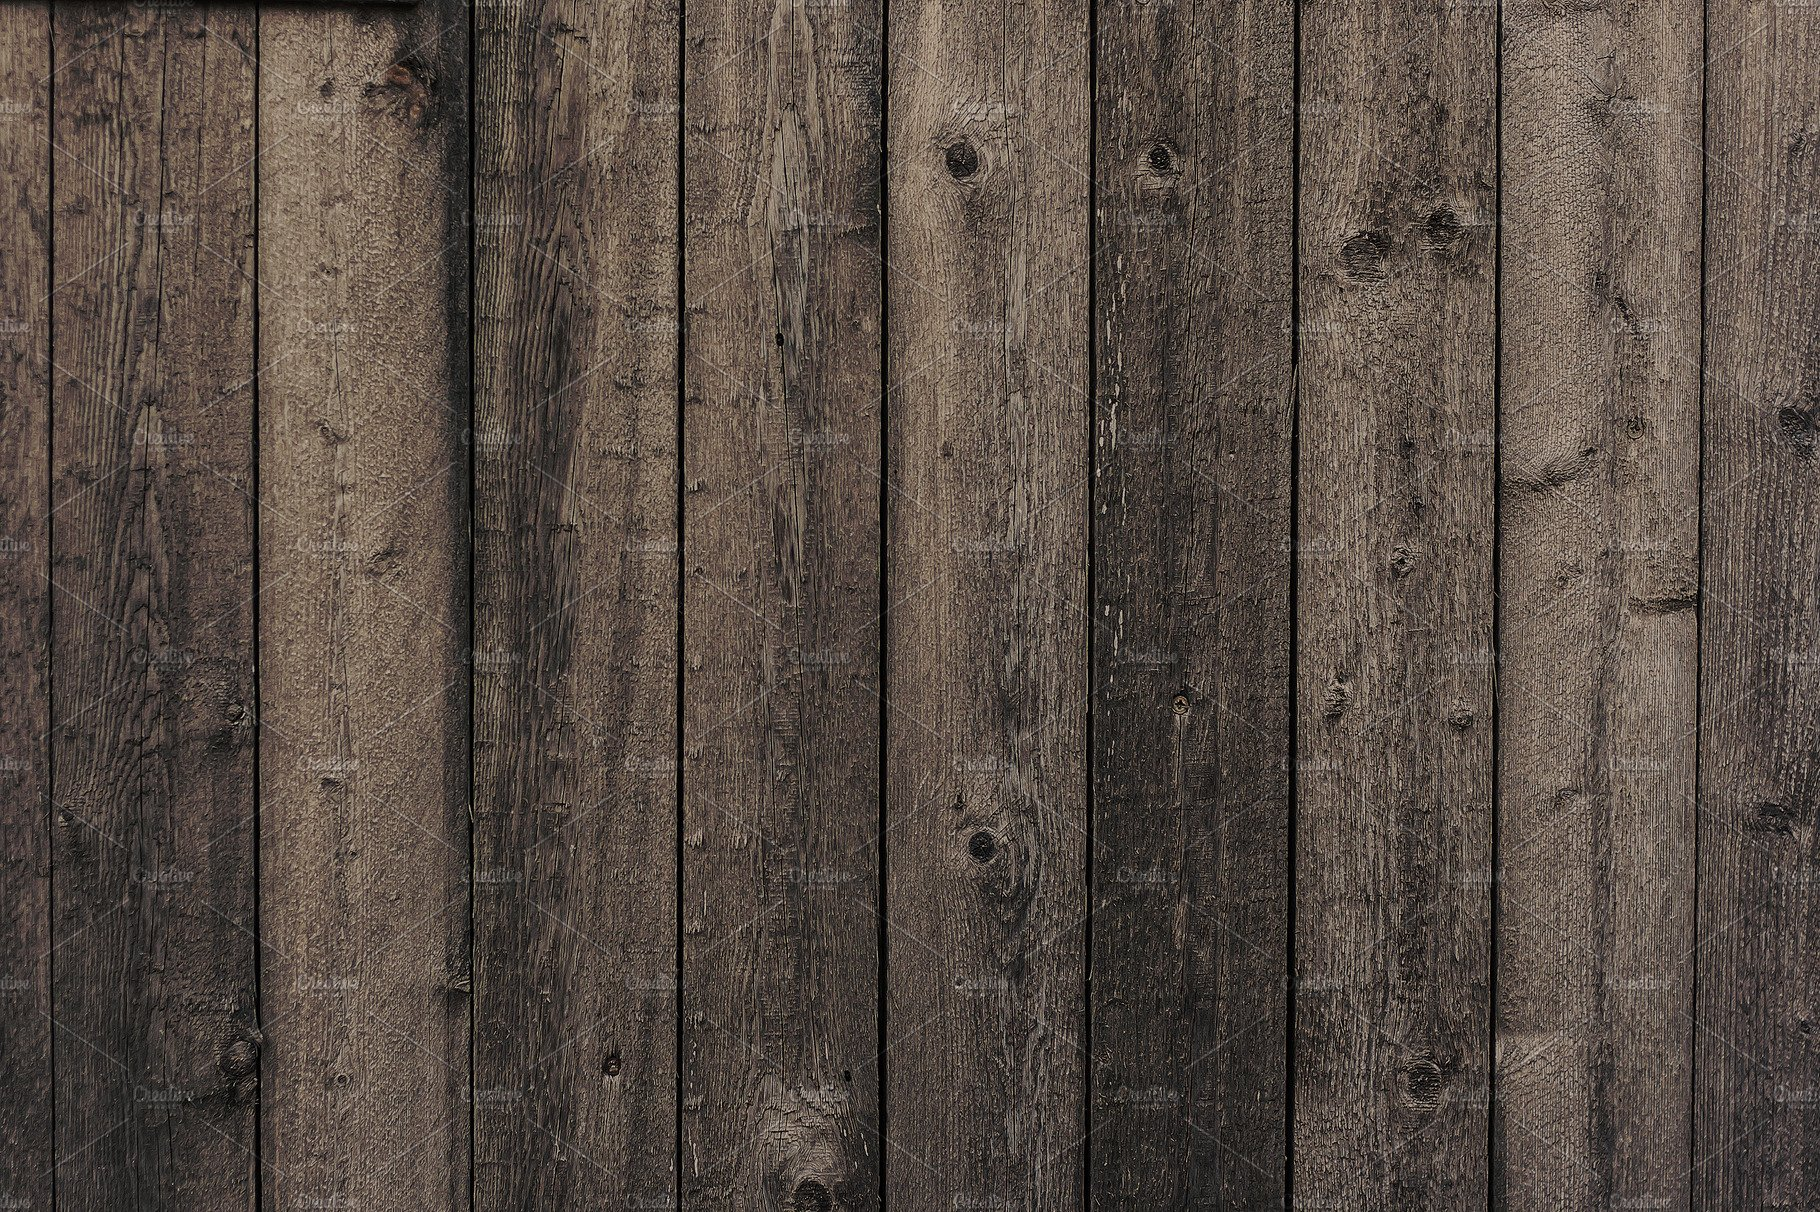 Old Dark Wooden Wall High Quality Stock Photos Creative Market